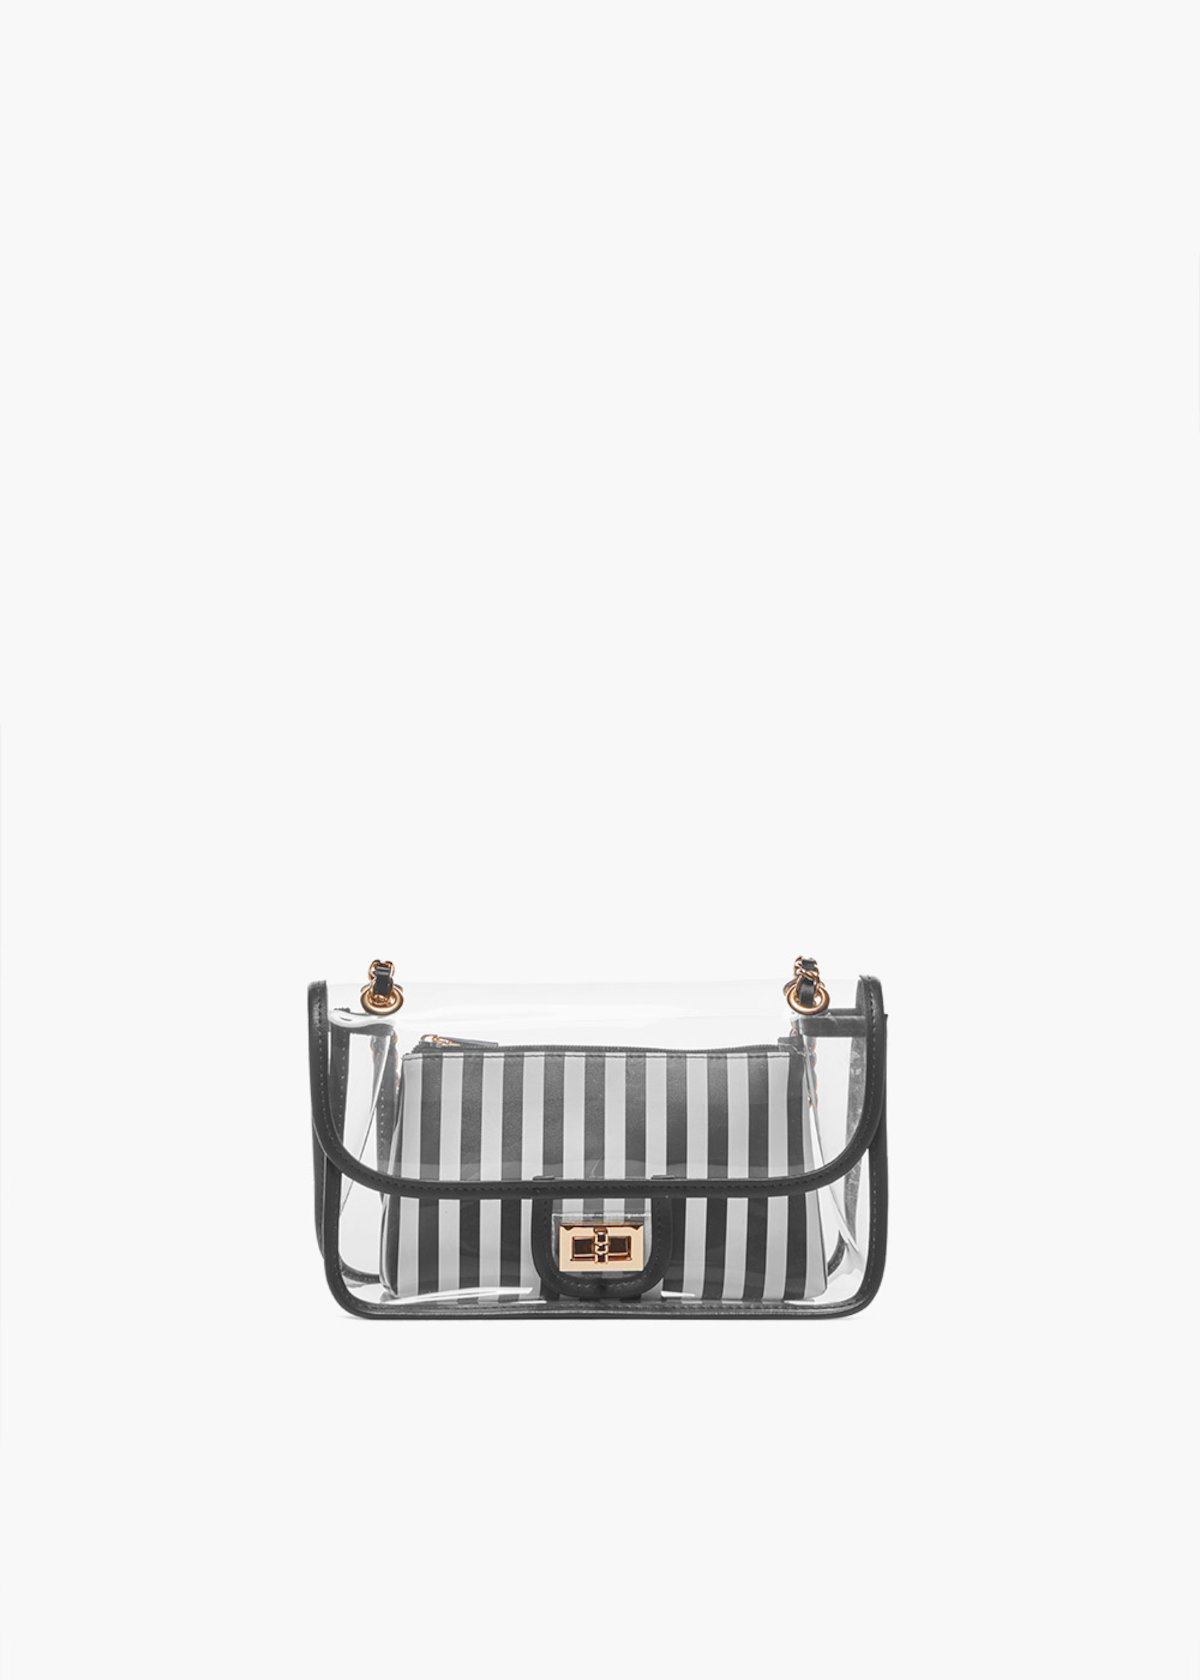 Transparent Bradley shoulder bag - Black / White Stripes - Woman - Category image